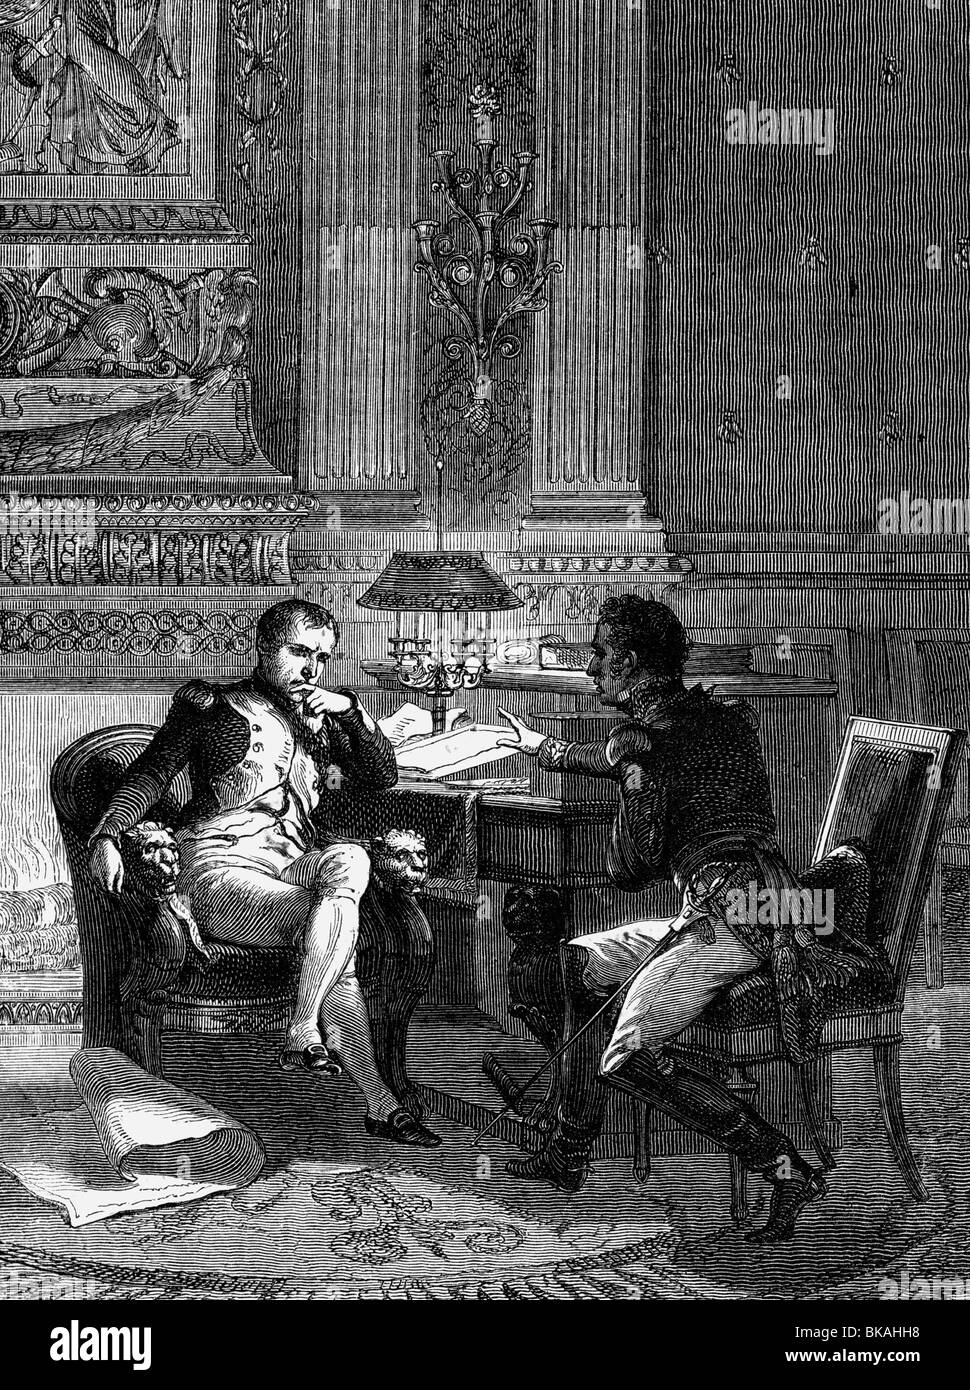 Foy, Maximilien Sebastien, 3.2.1775 - 28.11.1825, French general, reporting to Emperor Napoleon I about the situation - Stock Image